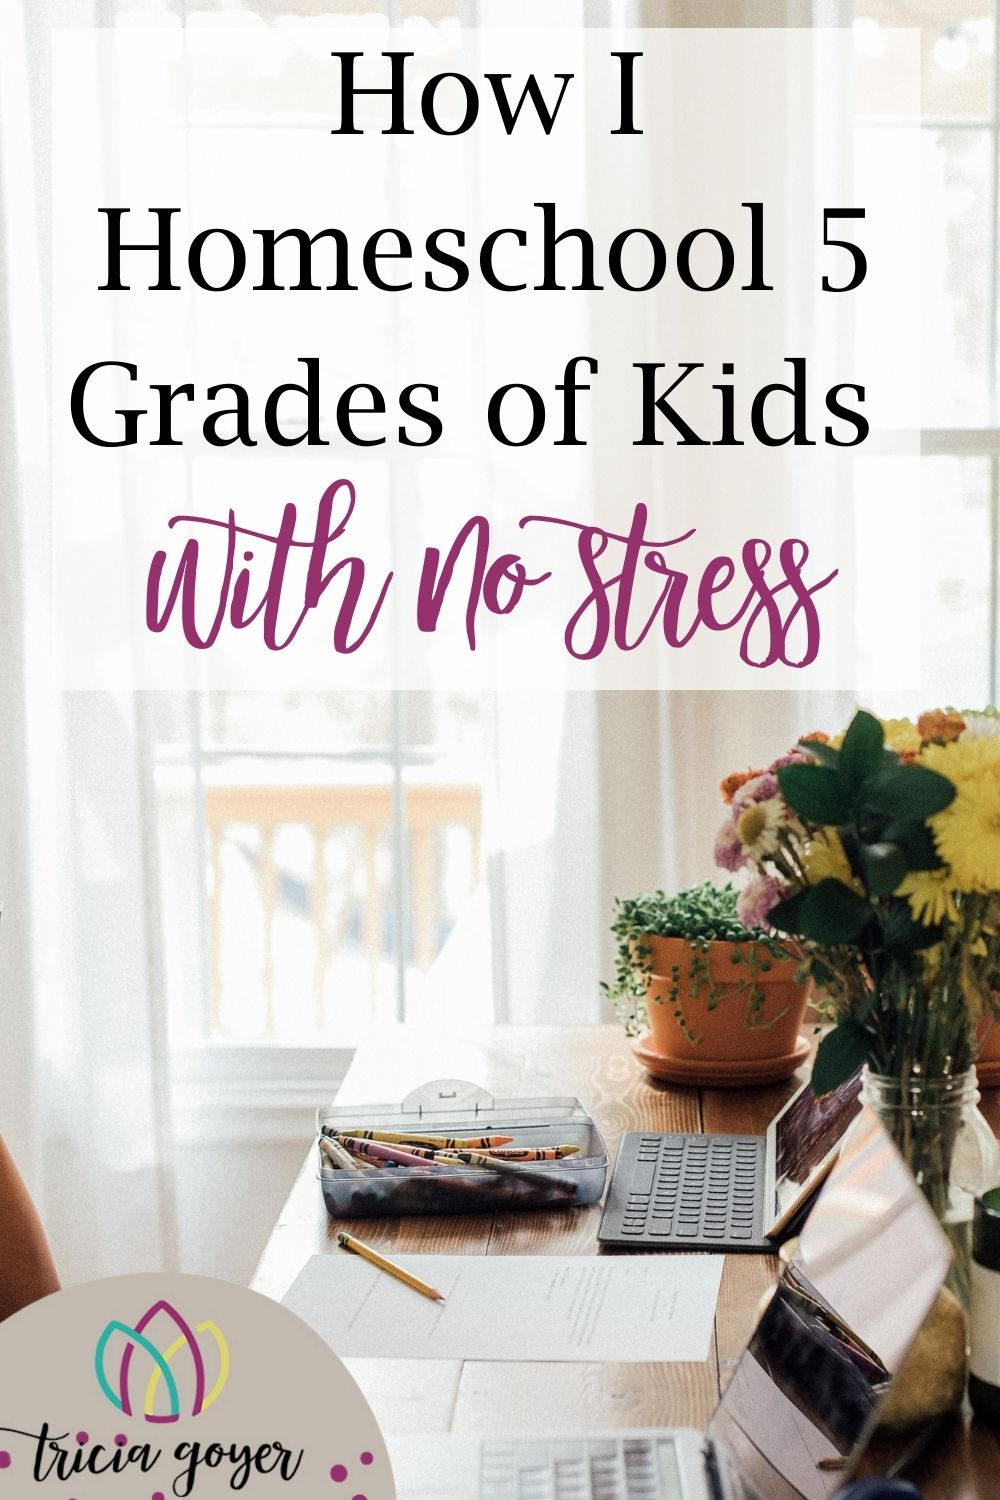 People are amazed that I homeschool with no stress (or very little) with FIVE grades all at once without losing my mind. I'm actually amazed too. When I first began so many years ago, I could not have imagined that I could have a large family AND teach homeschool with no stress. Multiple grades were intimidating, that's for sure! Tricia Goyer shares her secrets on the blog!